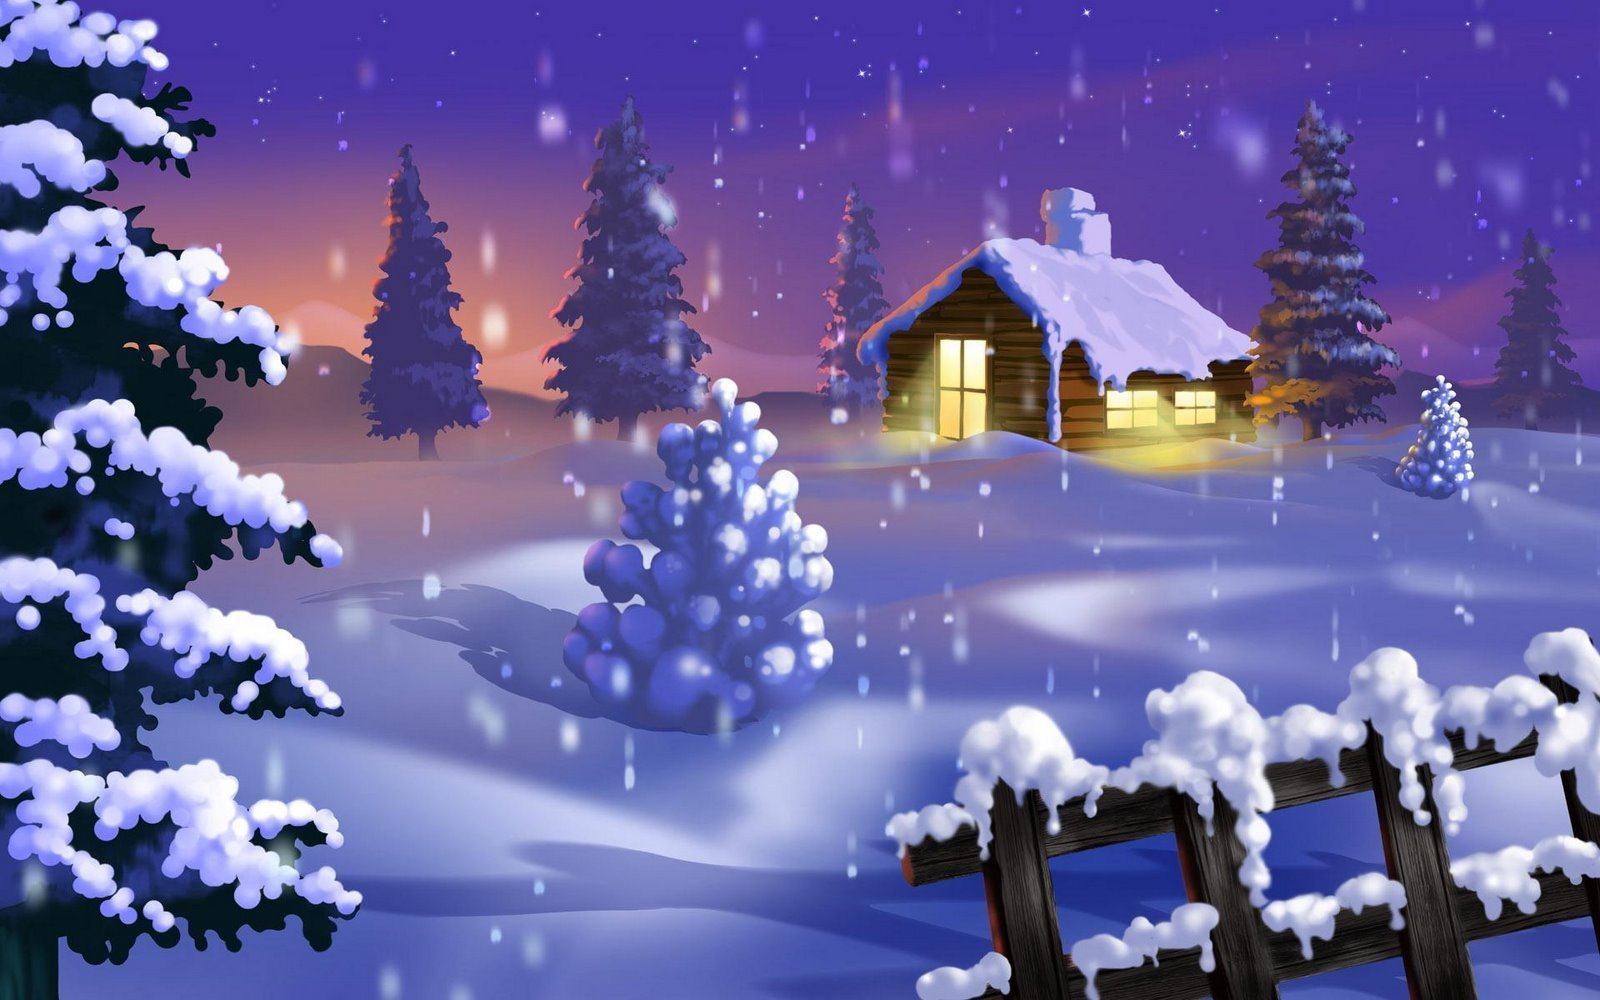 HD Wallpapers Christmas Wallpaper 1600x1000